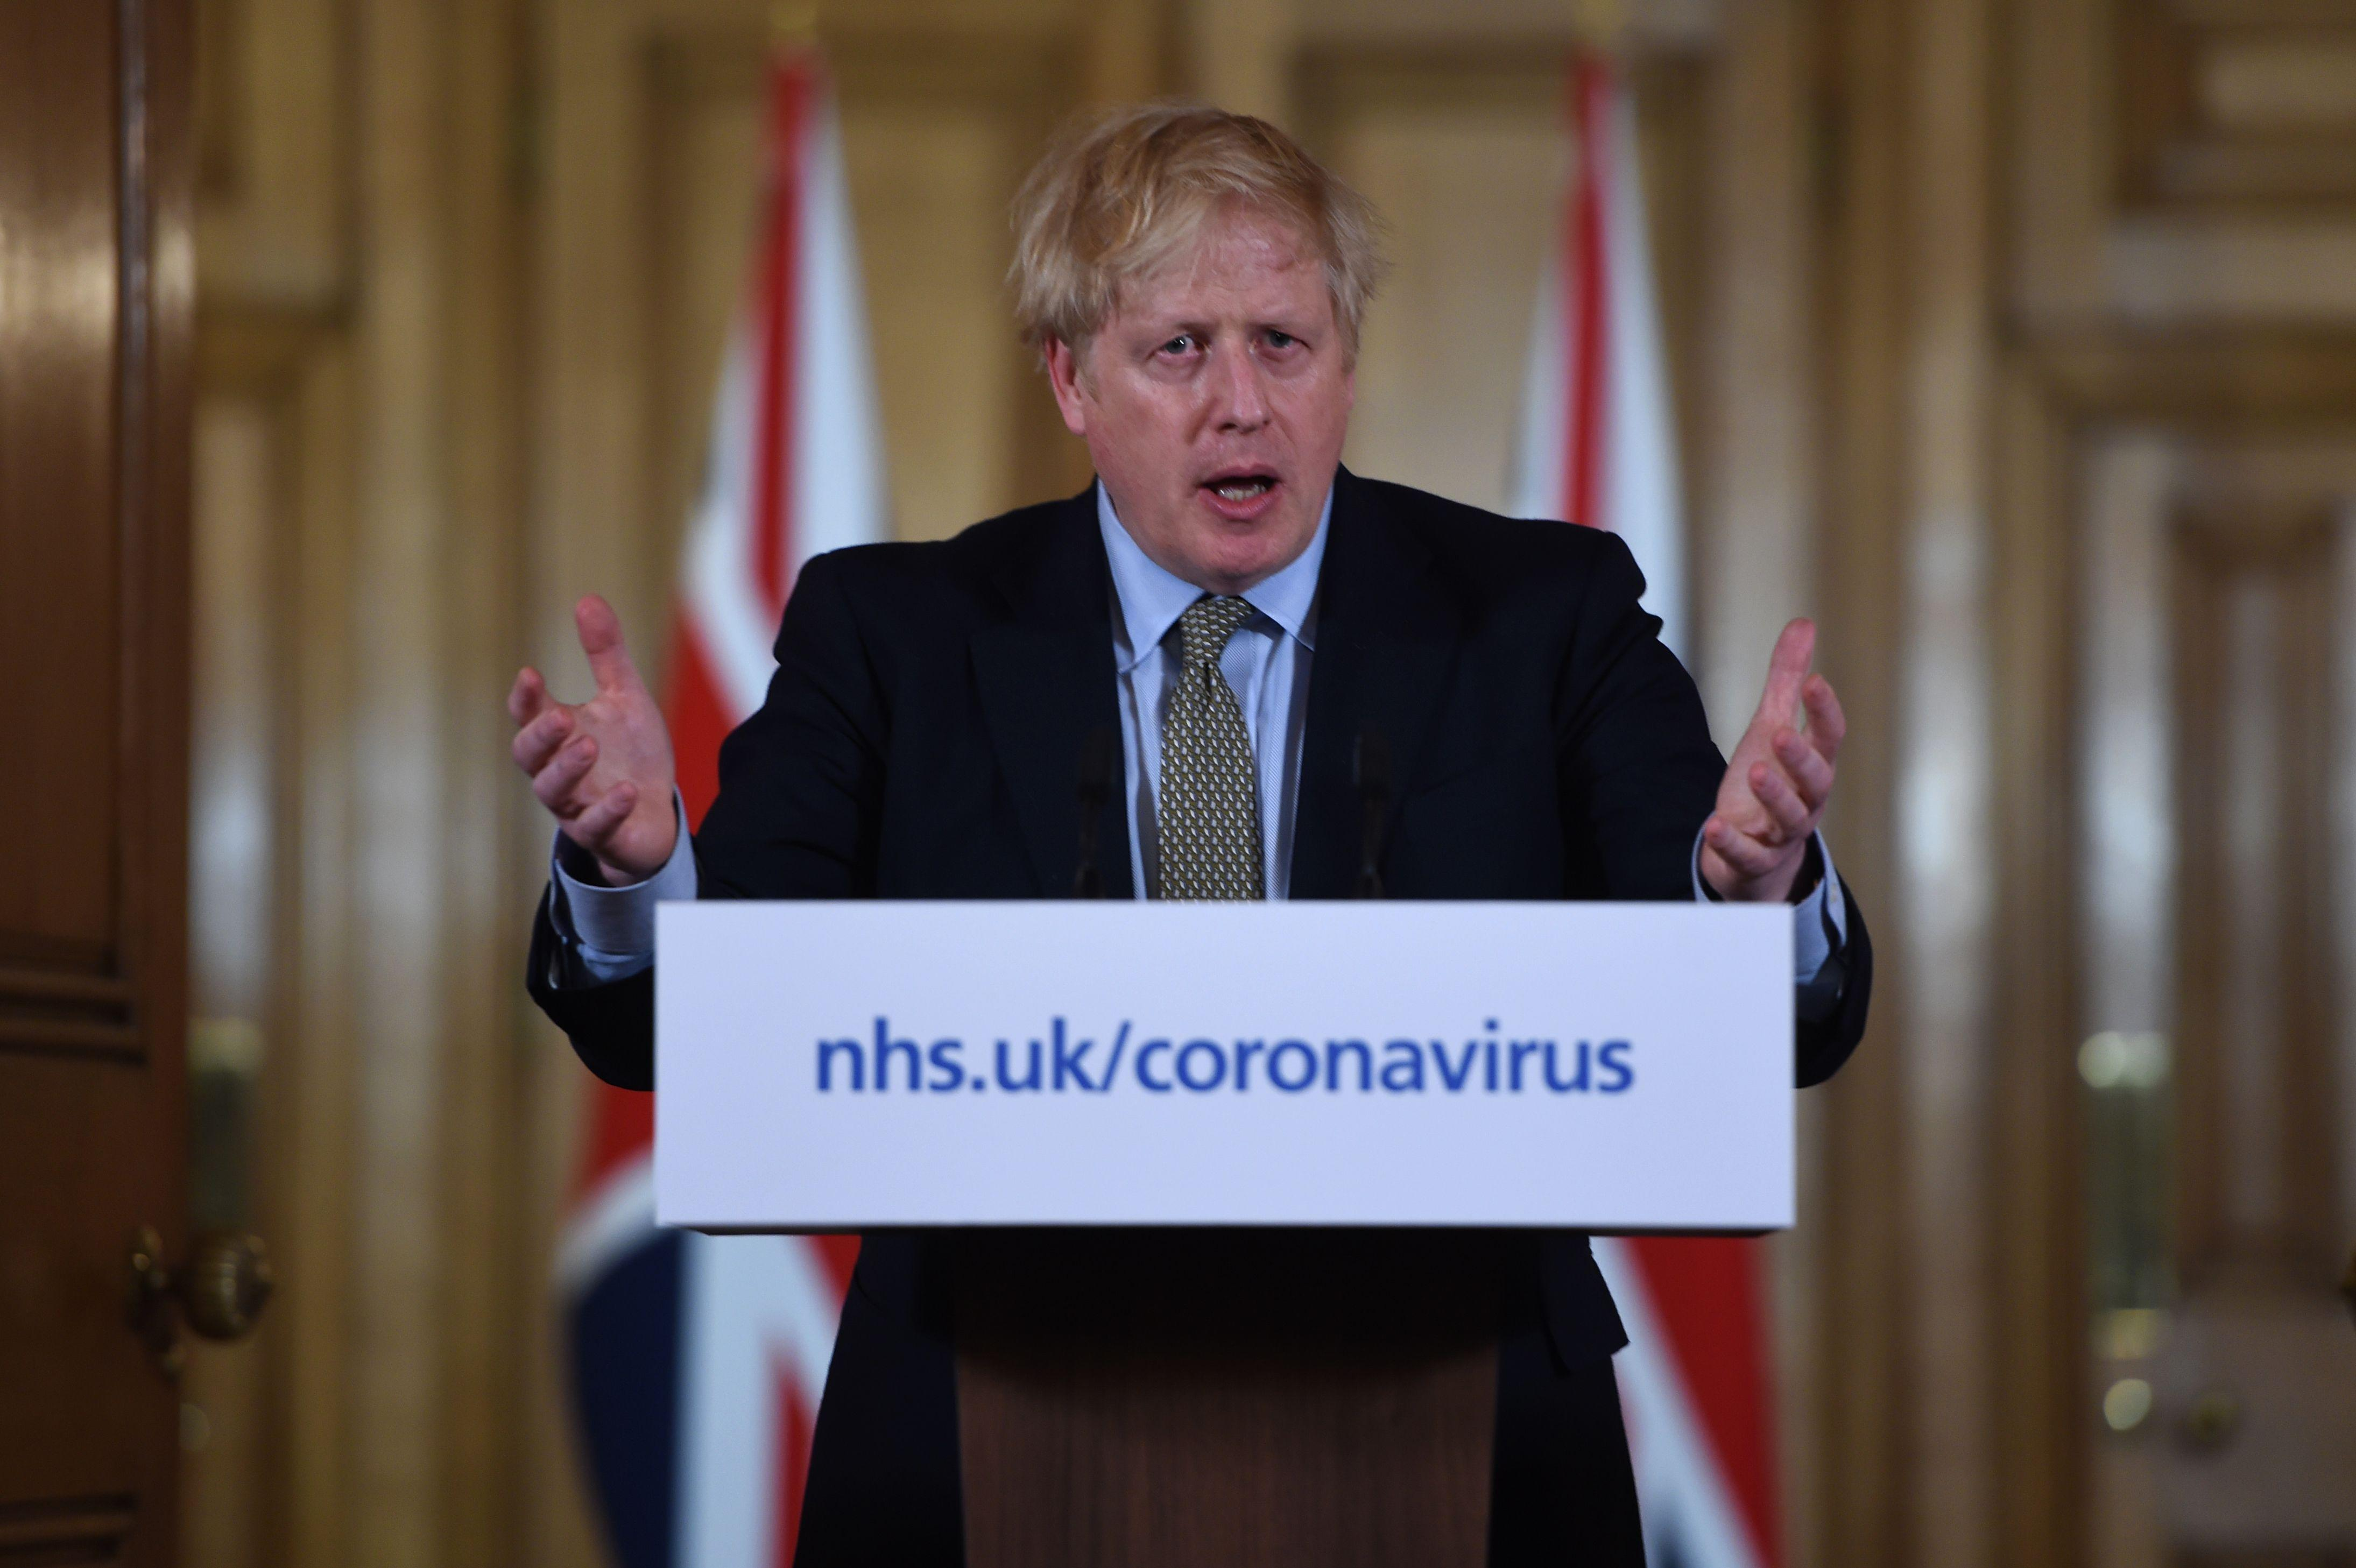 Britain's Prime Minister Boris Johnson addresses a news conference to give a daily update on the government's response to the novel coronavirus COVID-19 outbreak, inside 10 Downing Street in London on March 18, 2020. (Photo by Eddie MULHOLLAND / POOL / AFP) (Photo by EDDIE MULHOLLAND/POOL/AFP via Getty Images)